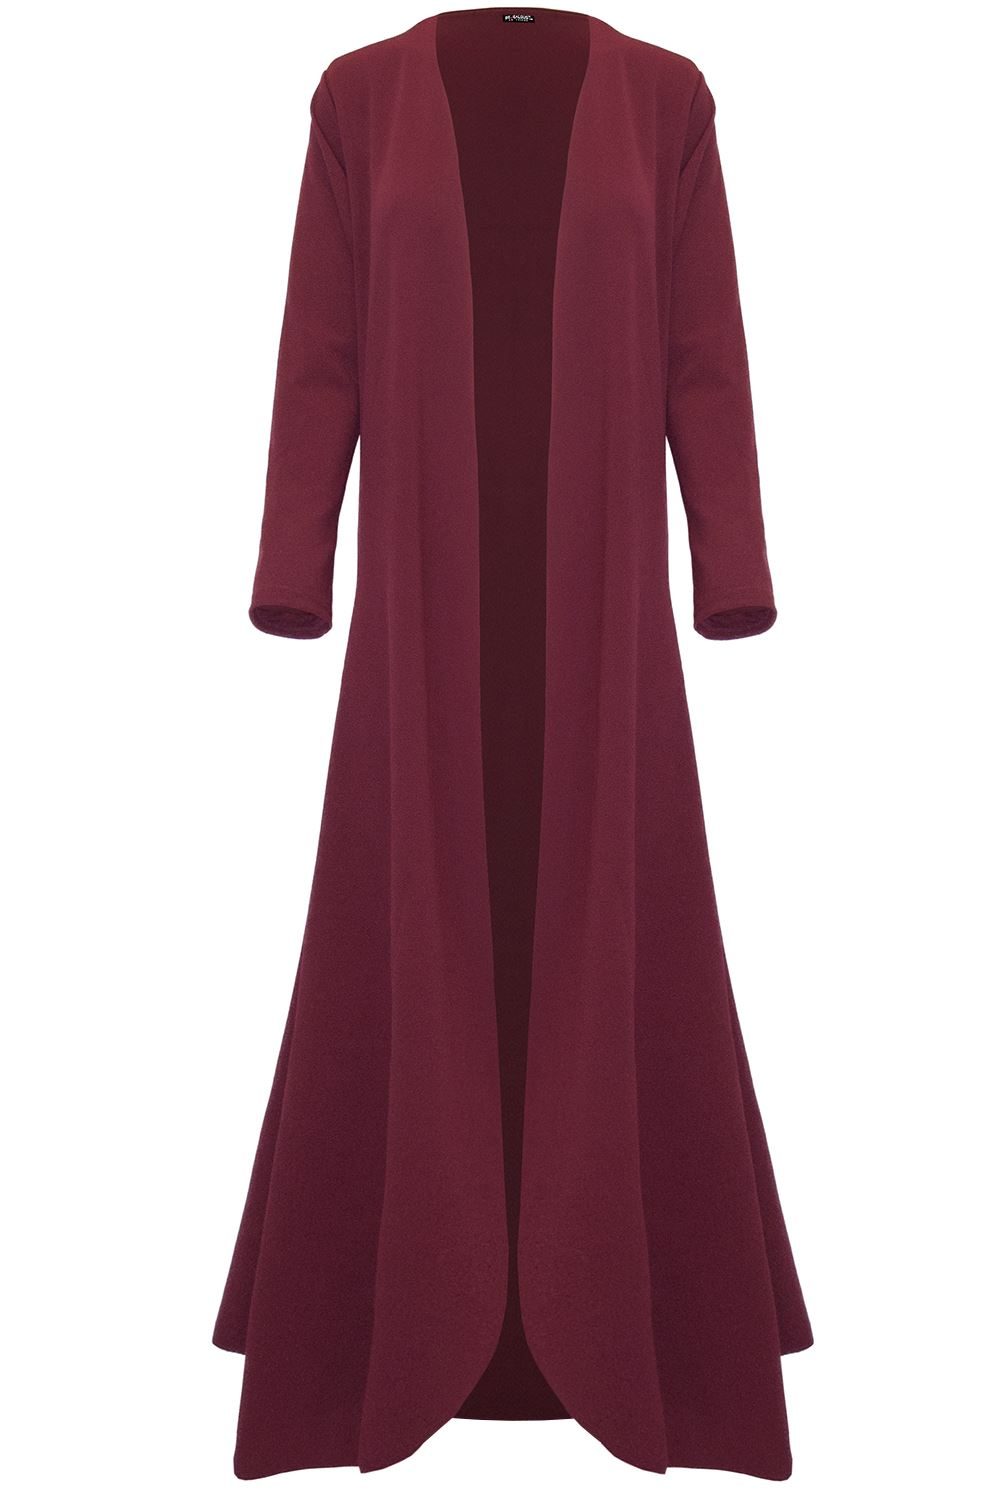 Ladies Womens Long Sleeve Waterfall Floaty Open Front Flare Maxi Cardigan Jacket